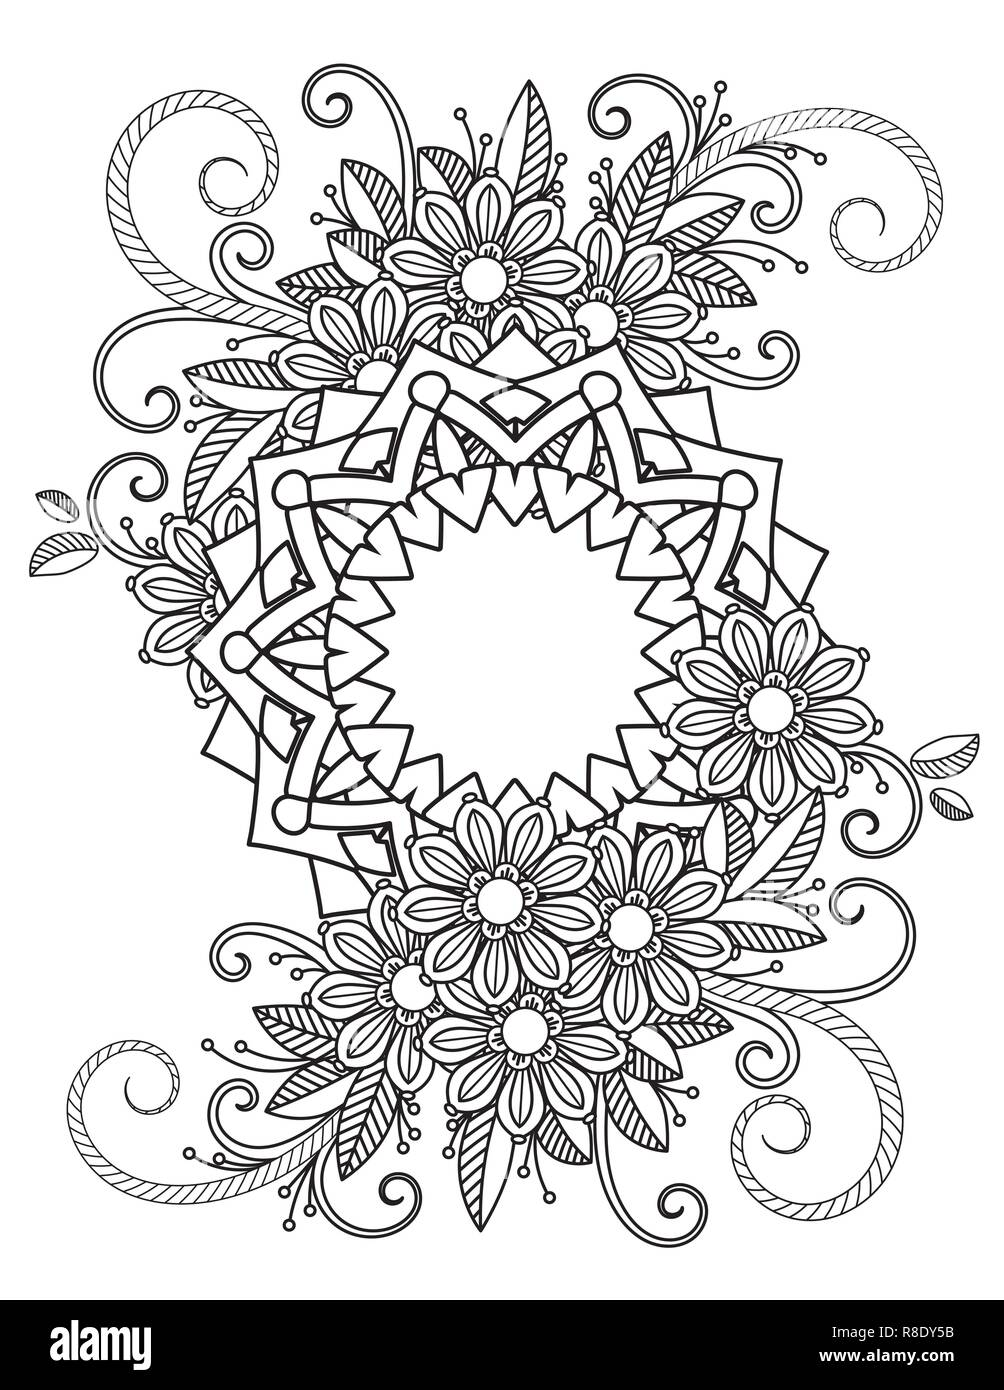 floral mandala pattern in black and white adult coloring book page with flowers and mandalas oriental pattern vintage decorative elements hand drawn vector illustration R8DY5B